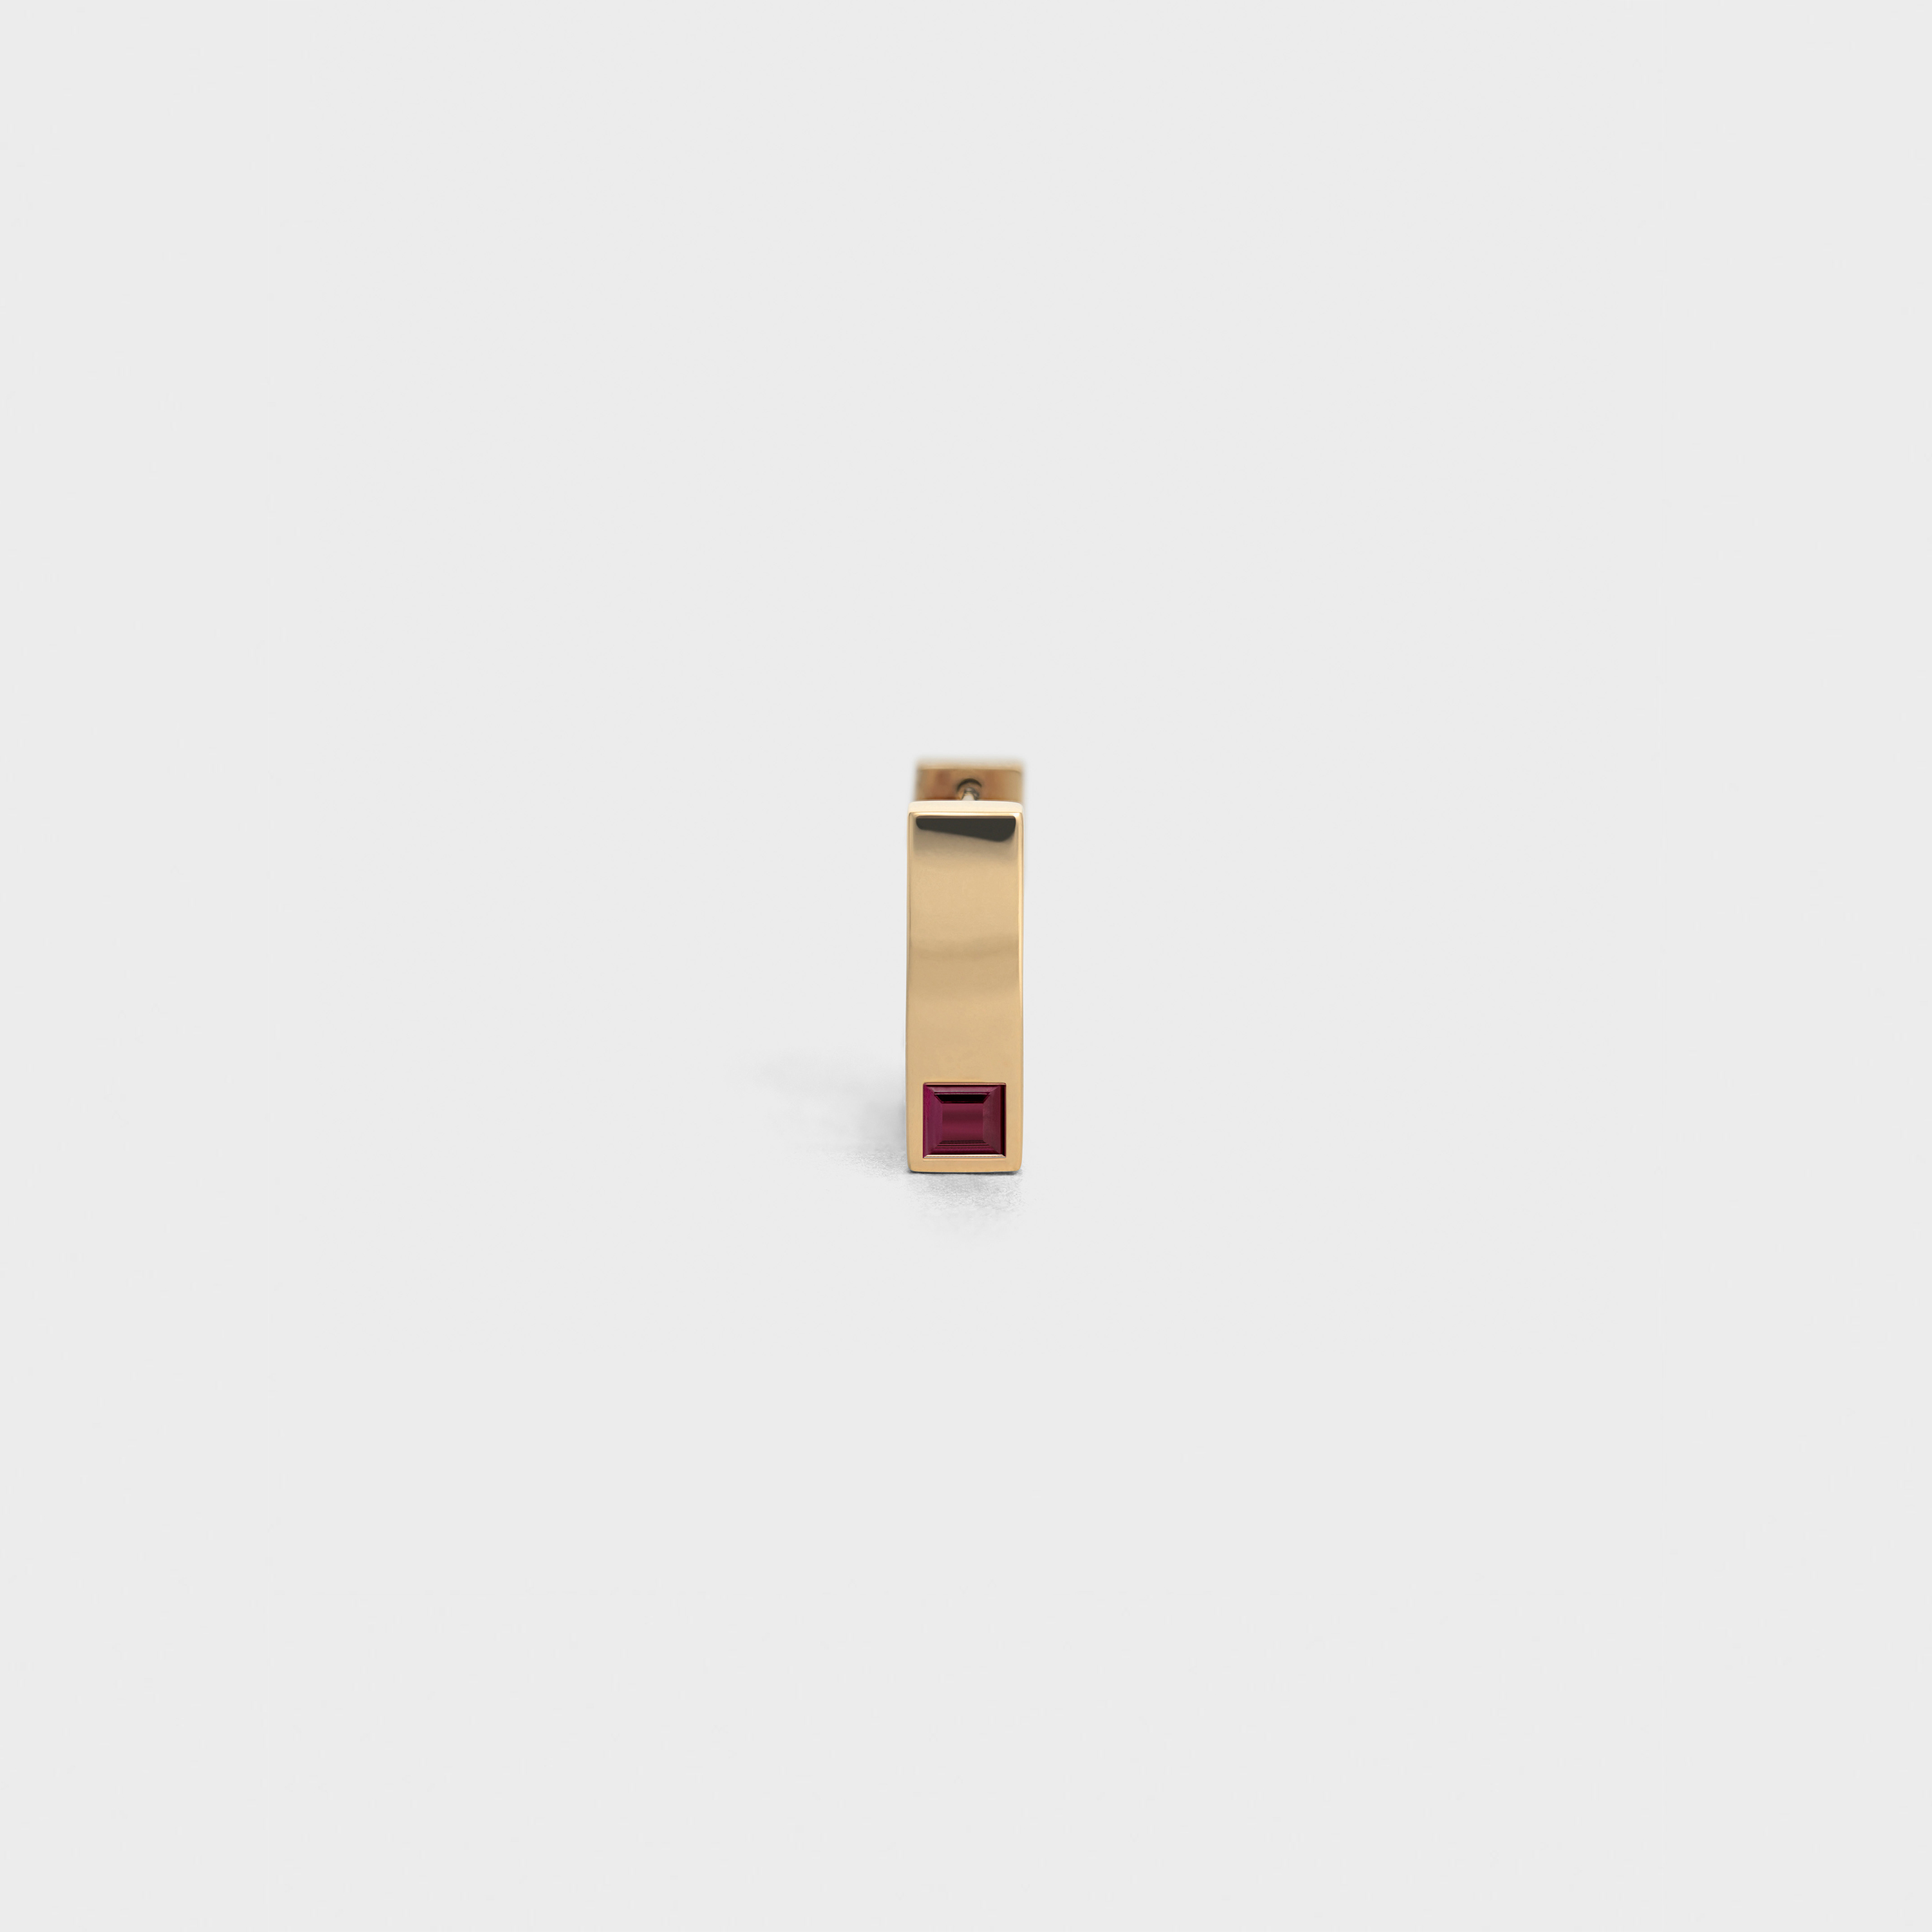 Celine Sentimental Square Earring in Yellow Gold and Ruby | CELINE